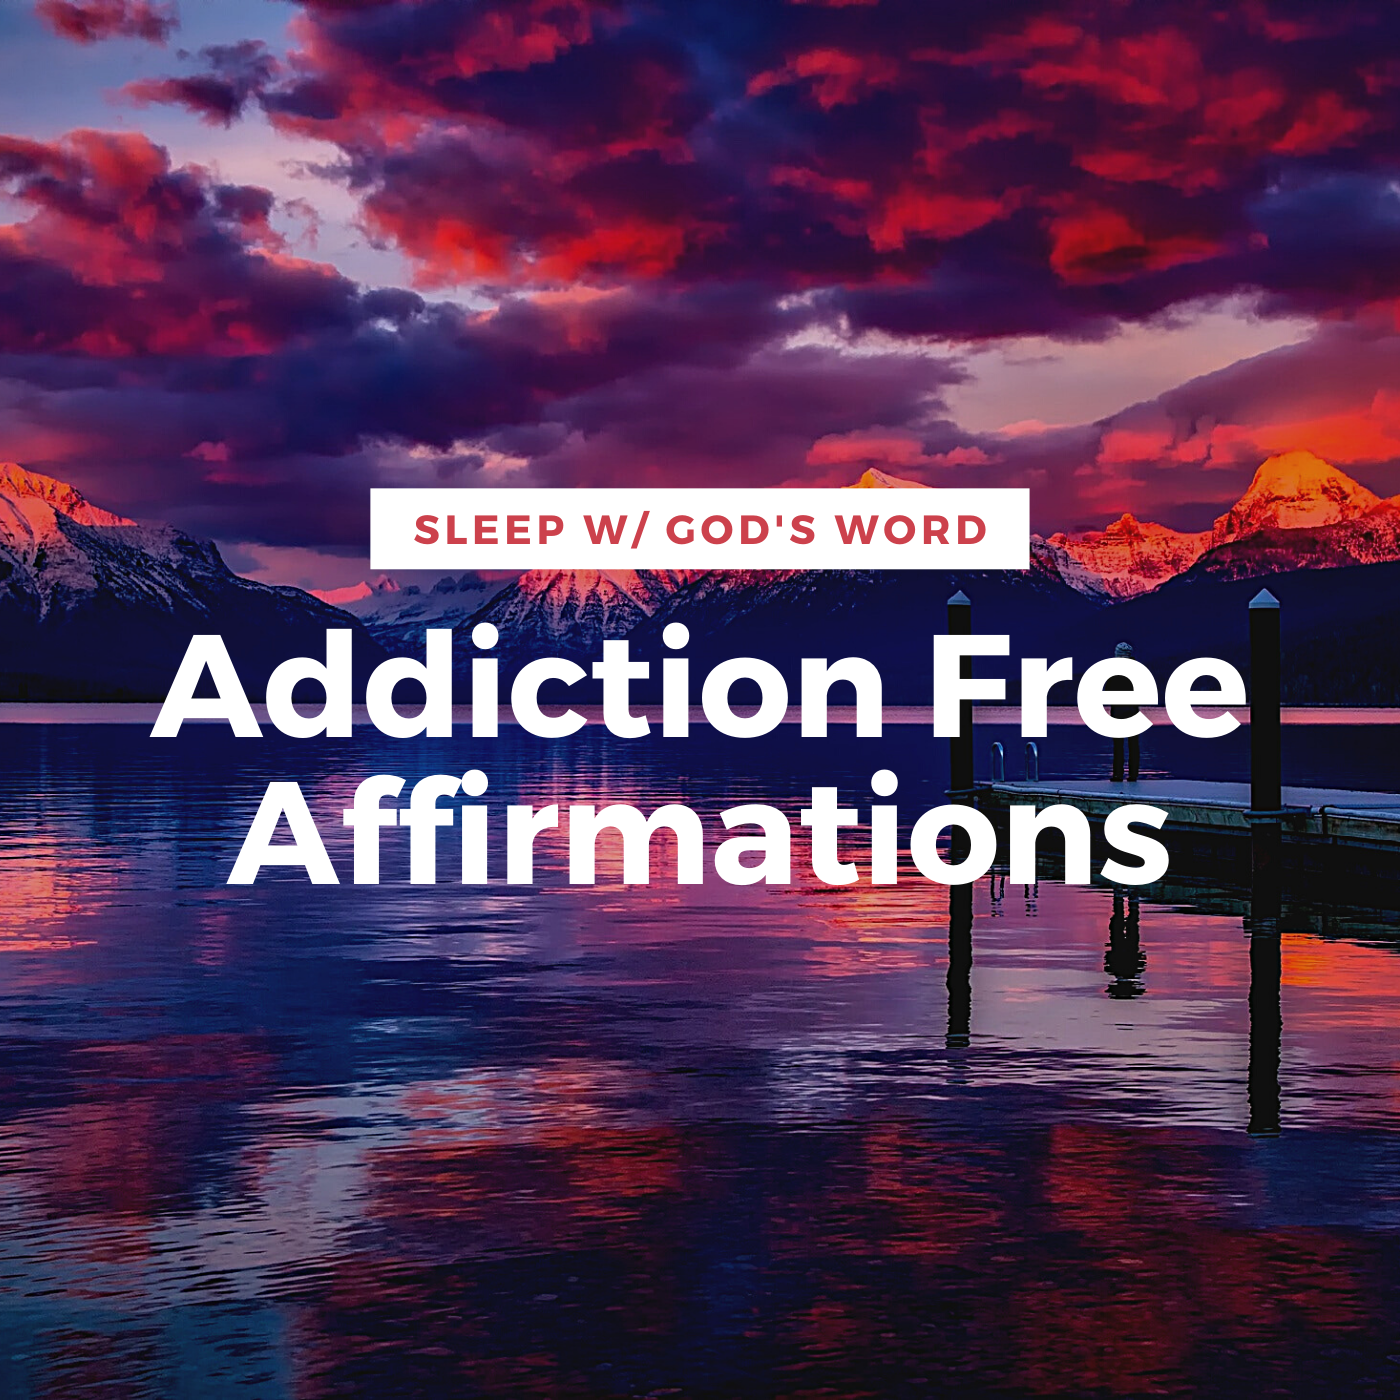 I AM Free From Addictions - Renew Your Mind While You Sleep